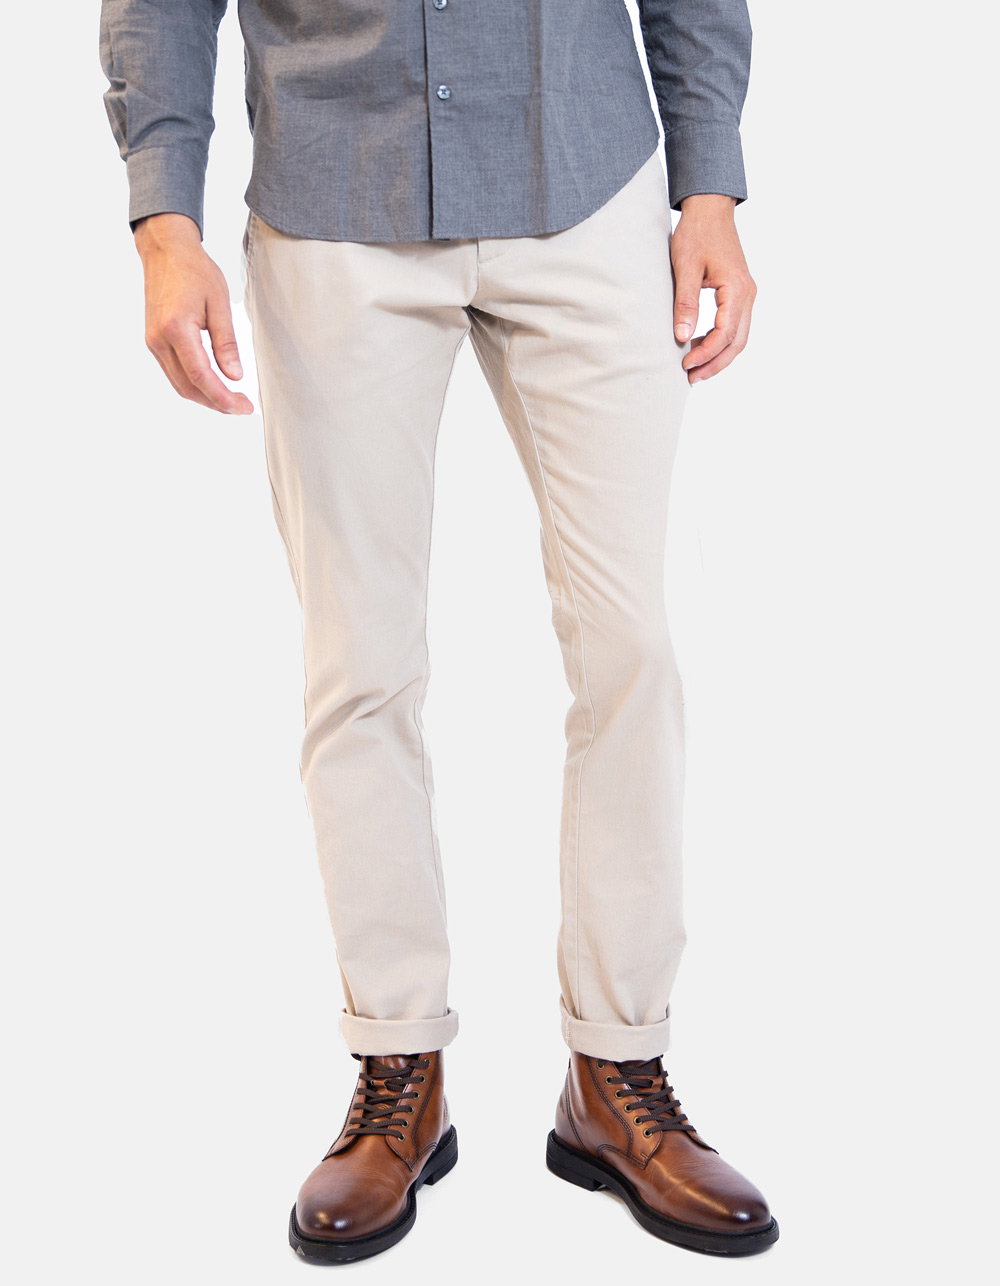 Basic chino beige trousers